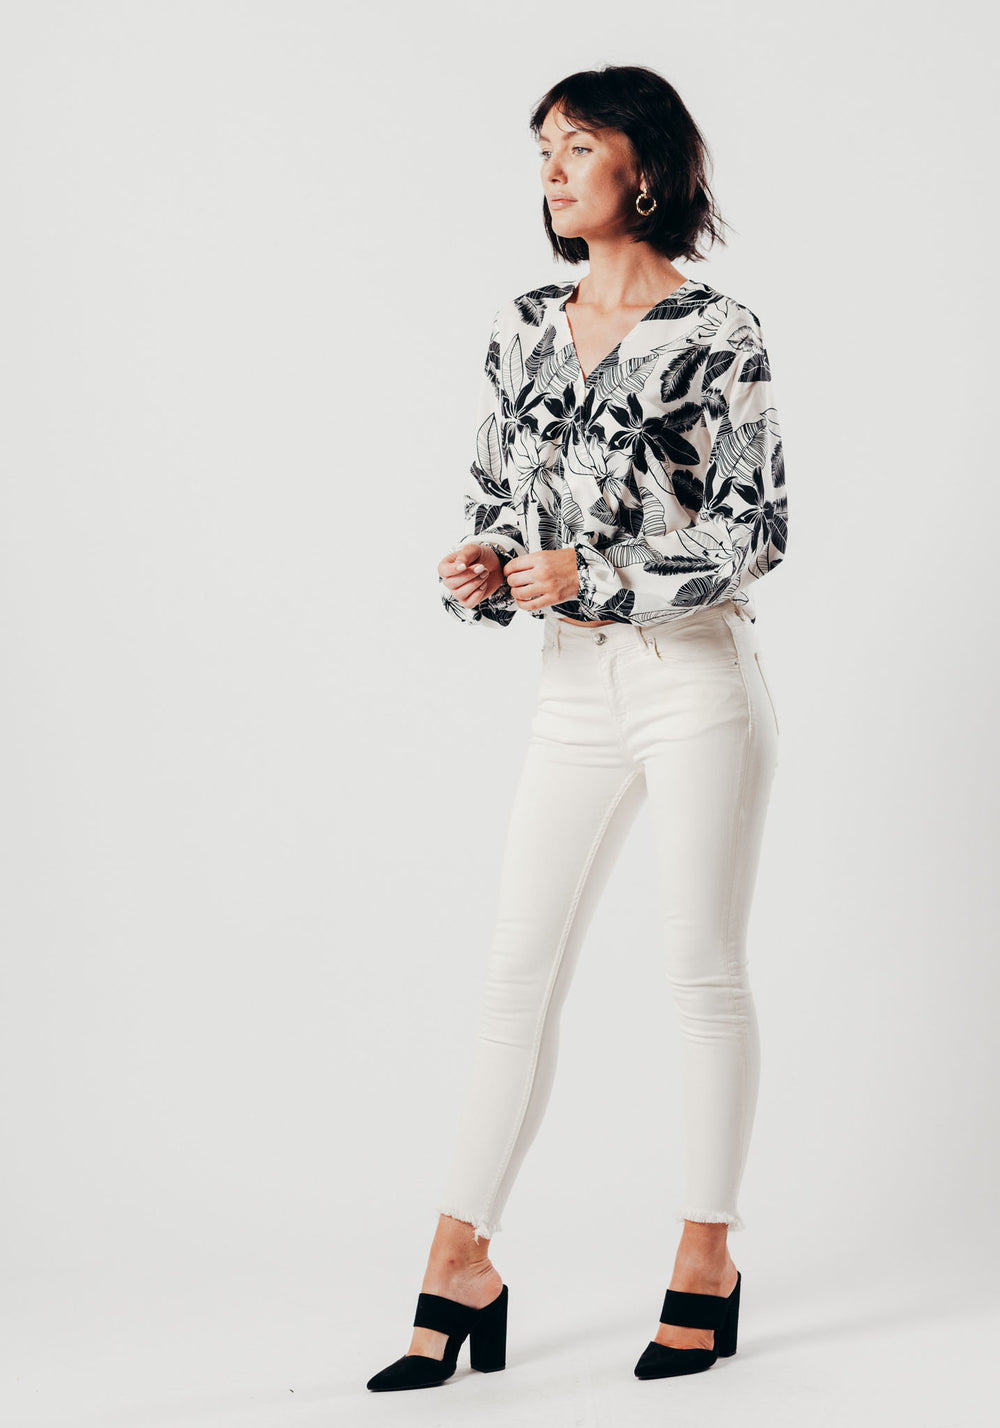 Black and White Floral Cross-Over Top